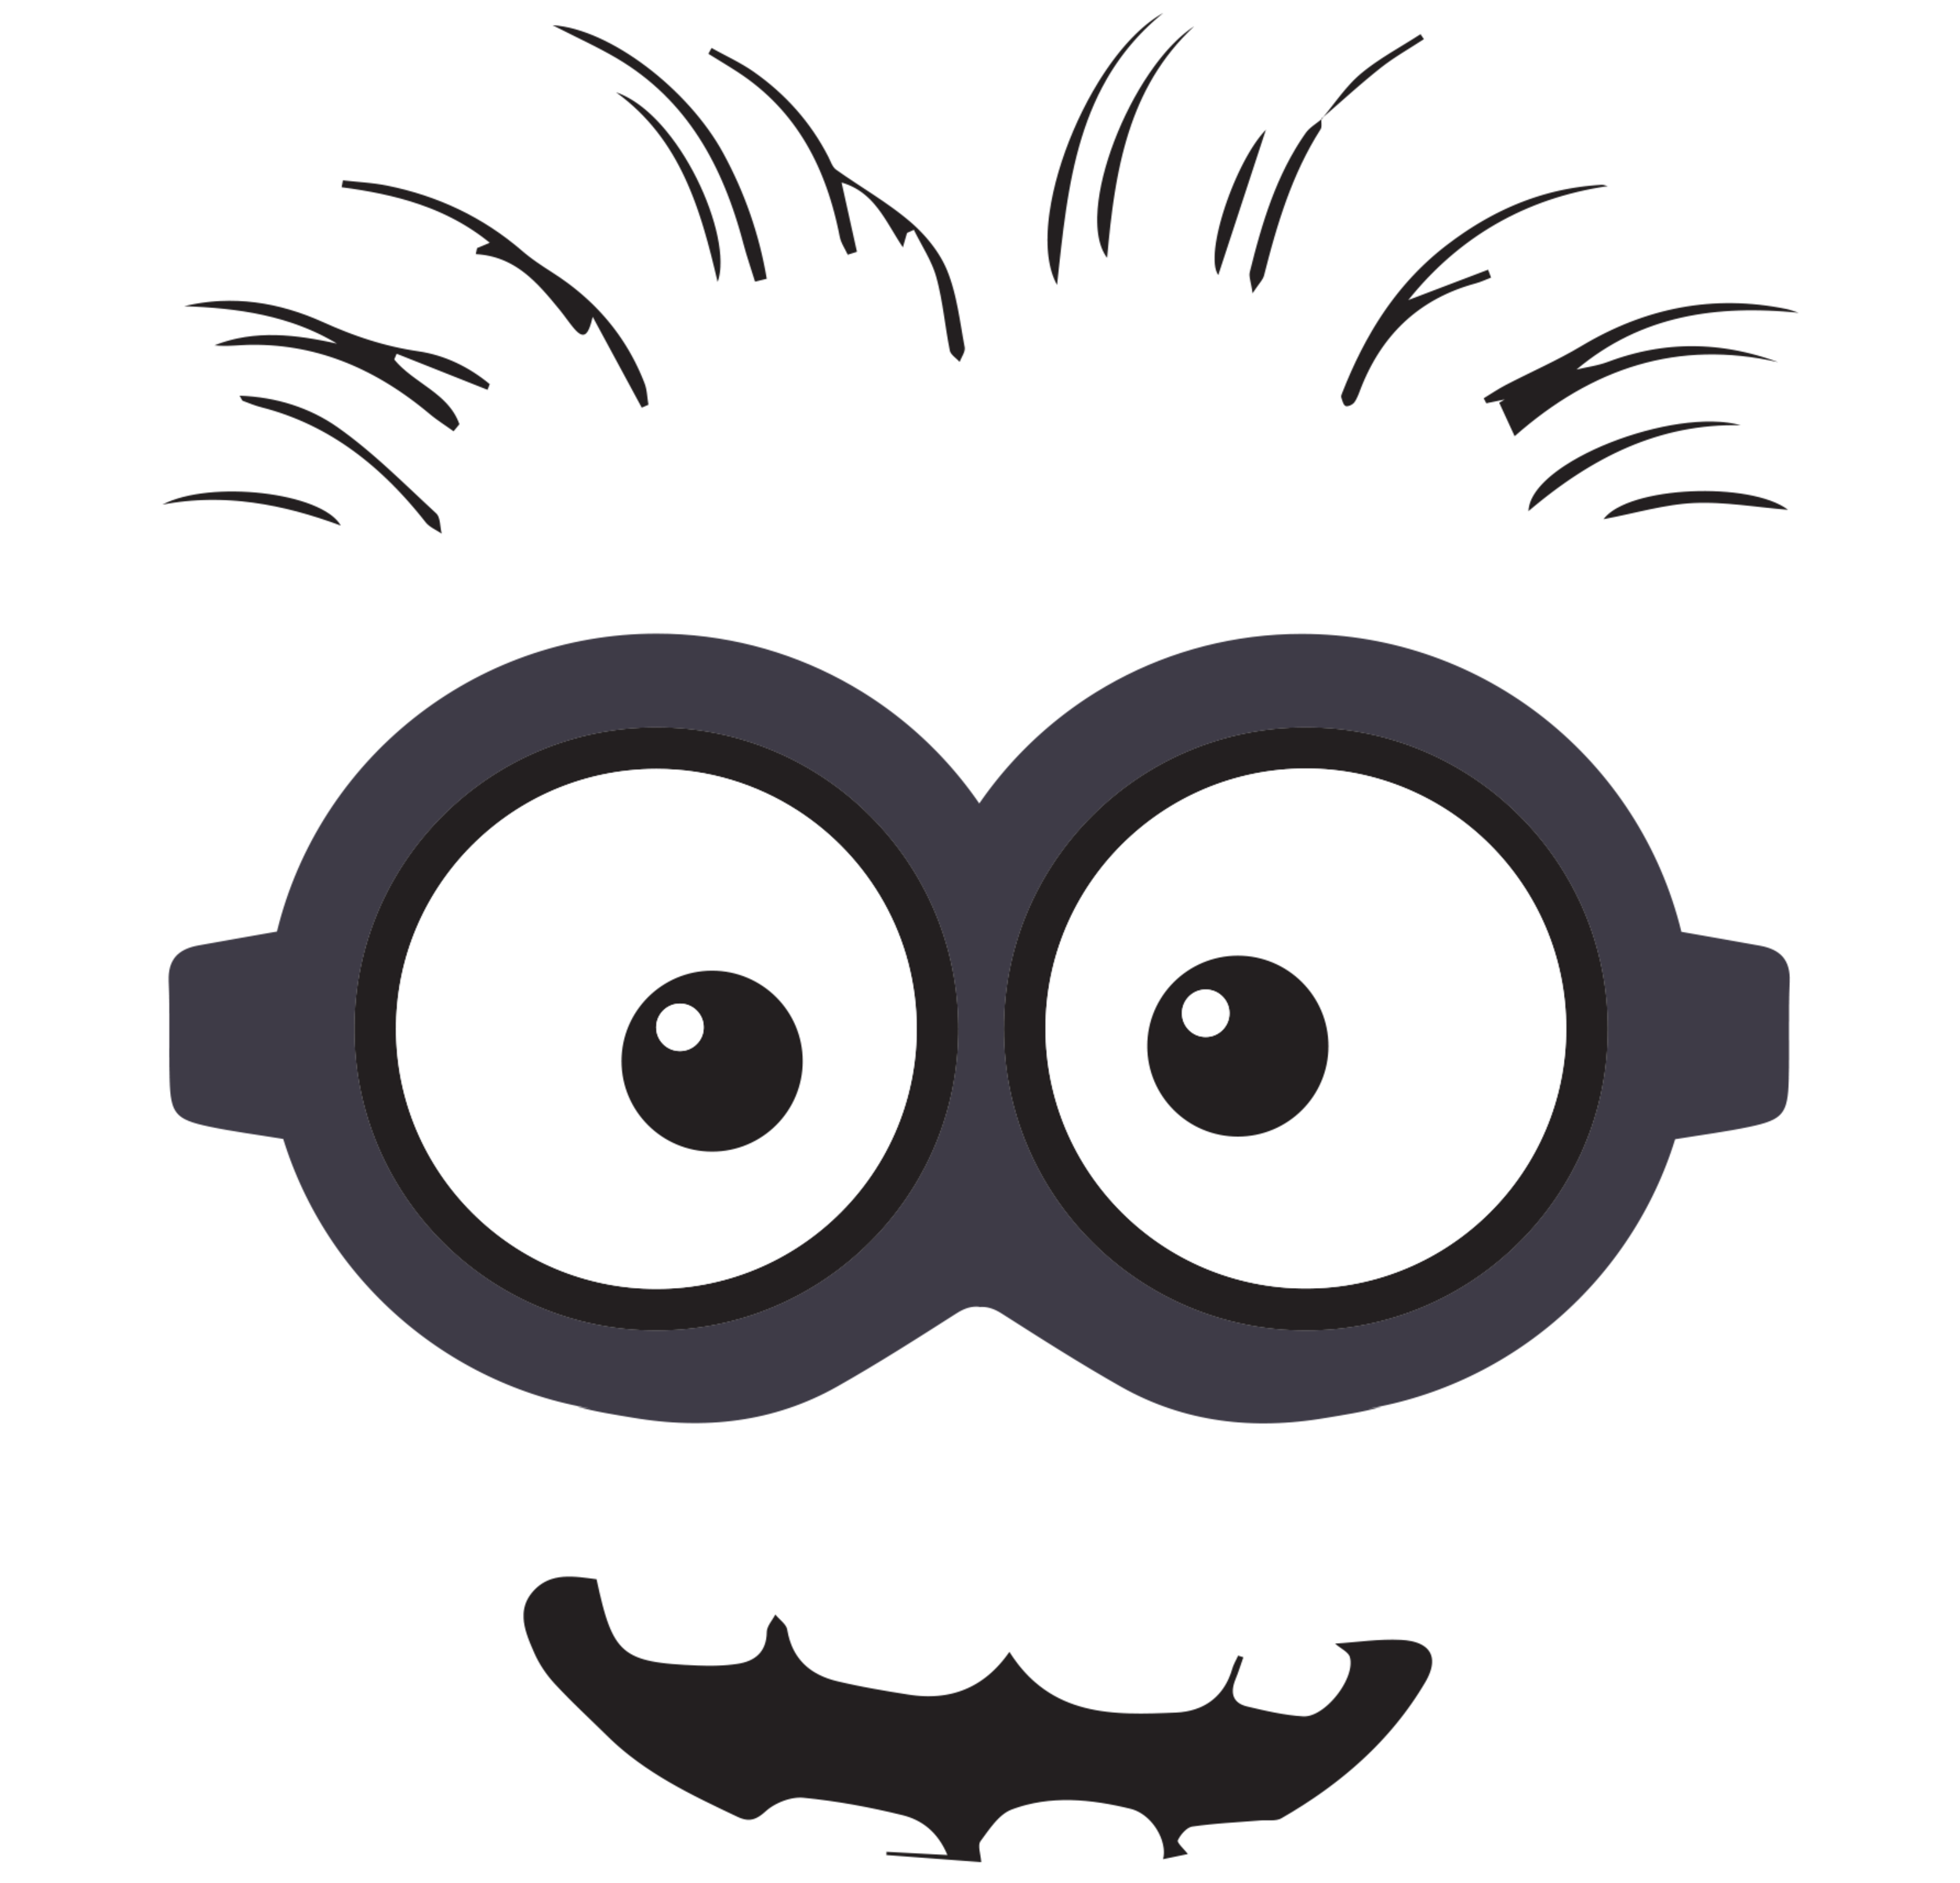 Cross eyed clipart png royalty free stock 28+ Collection of Minion Eye Clipart Black And White | High quality ... png royalty free stock